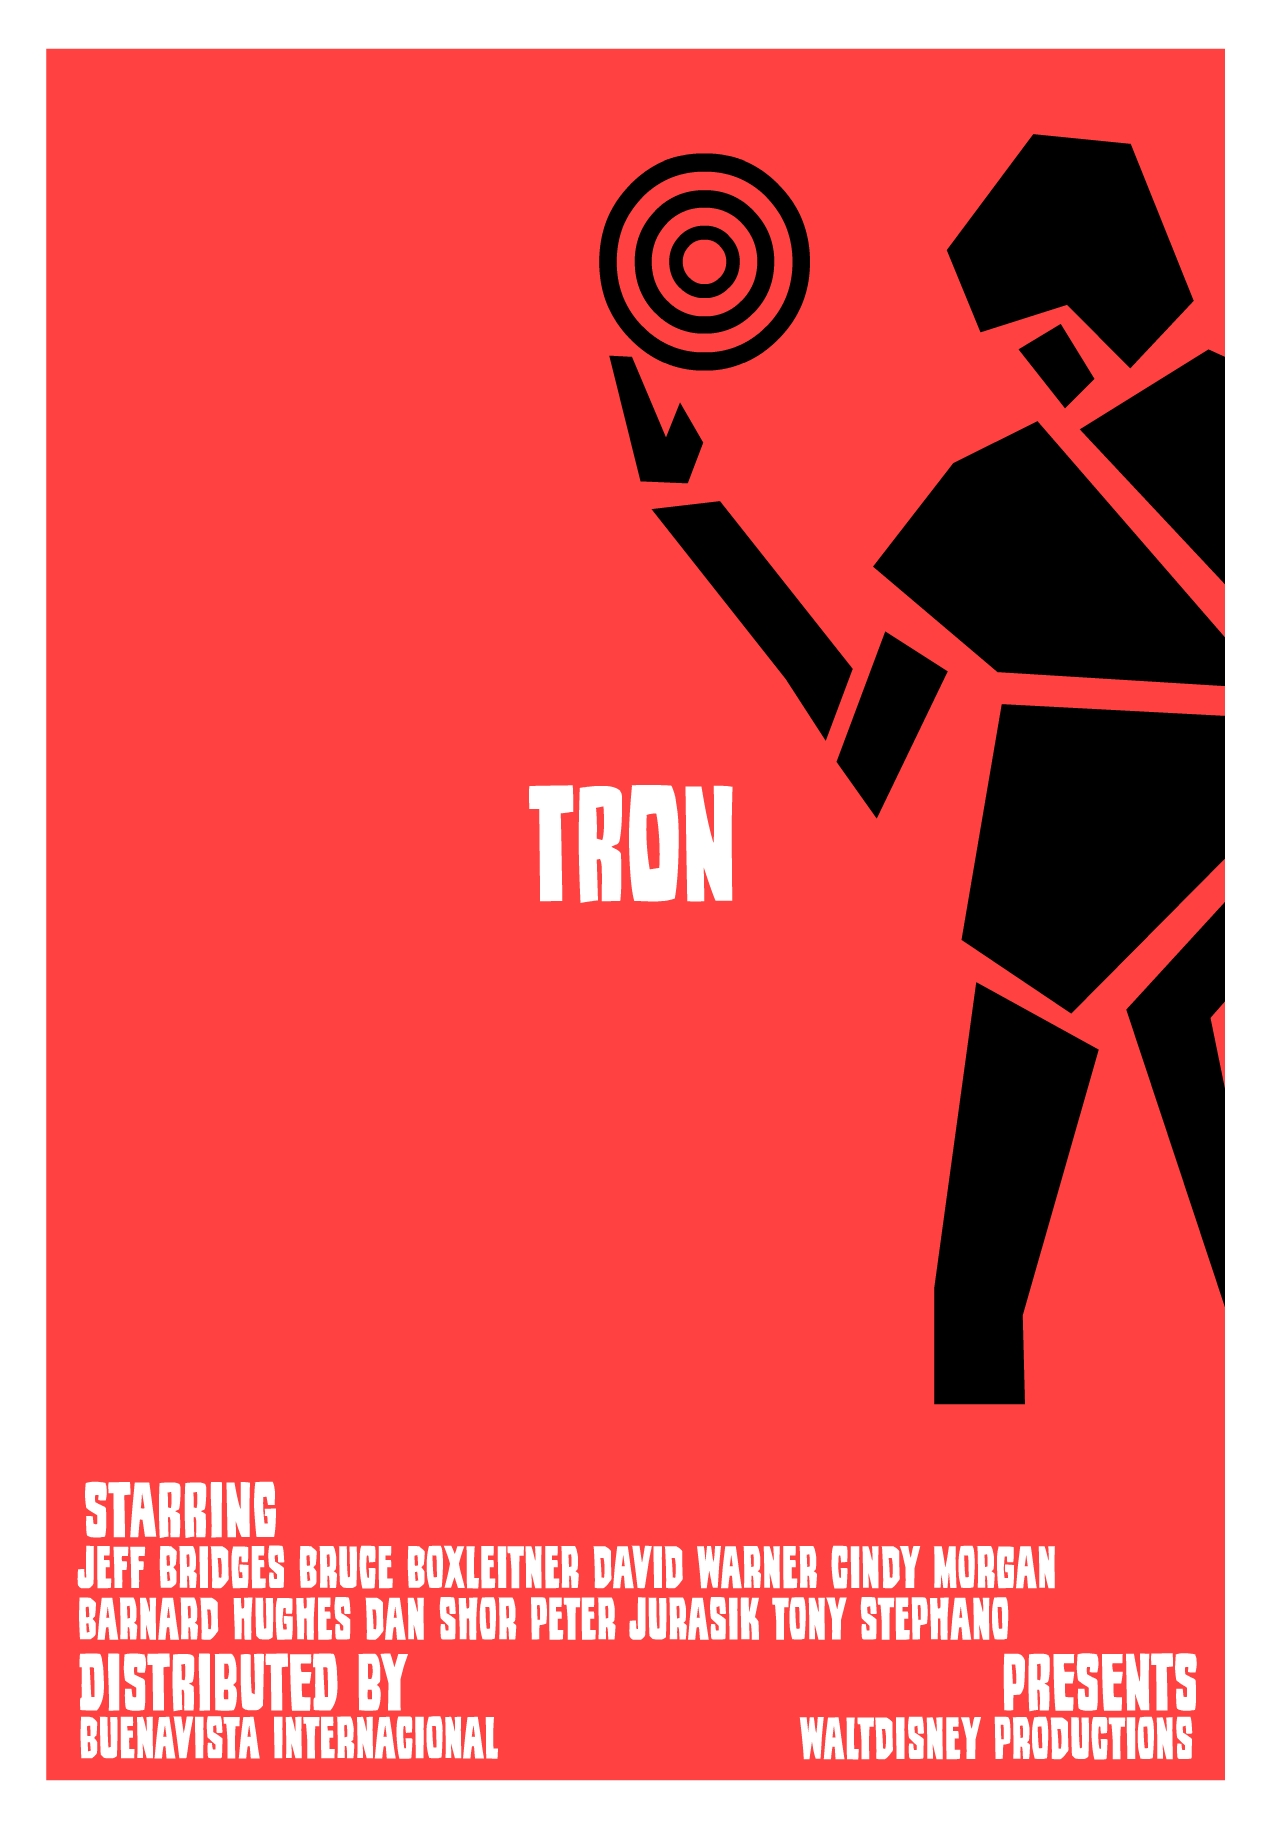 tron_posters_2020_8